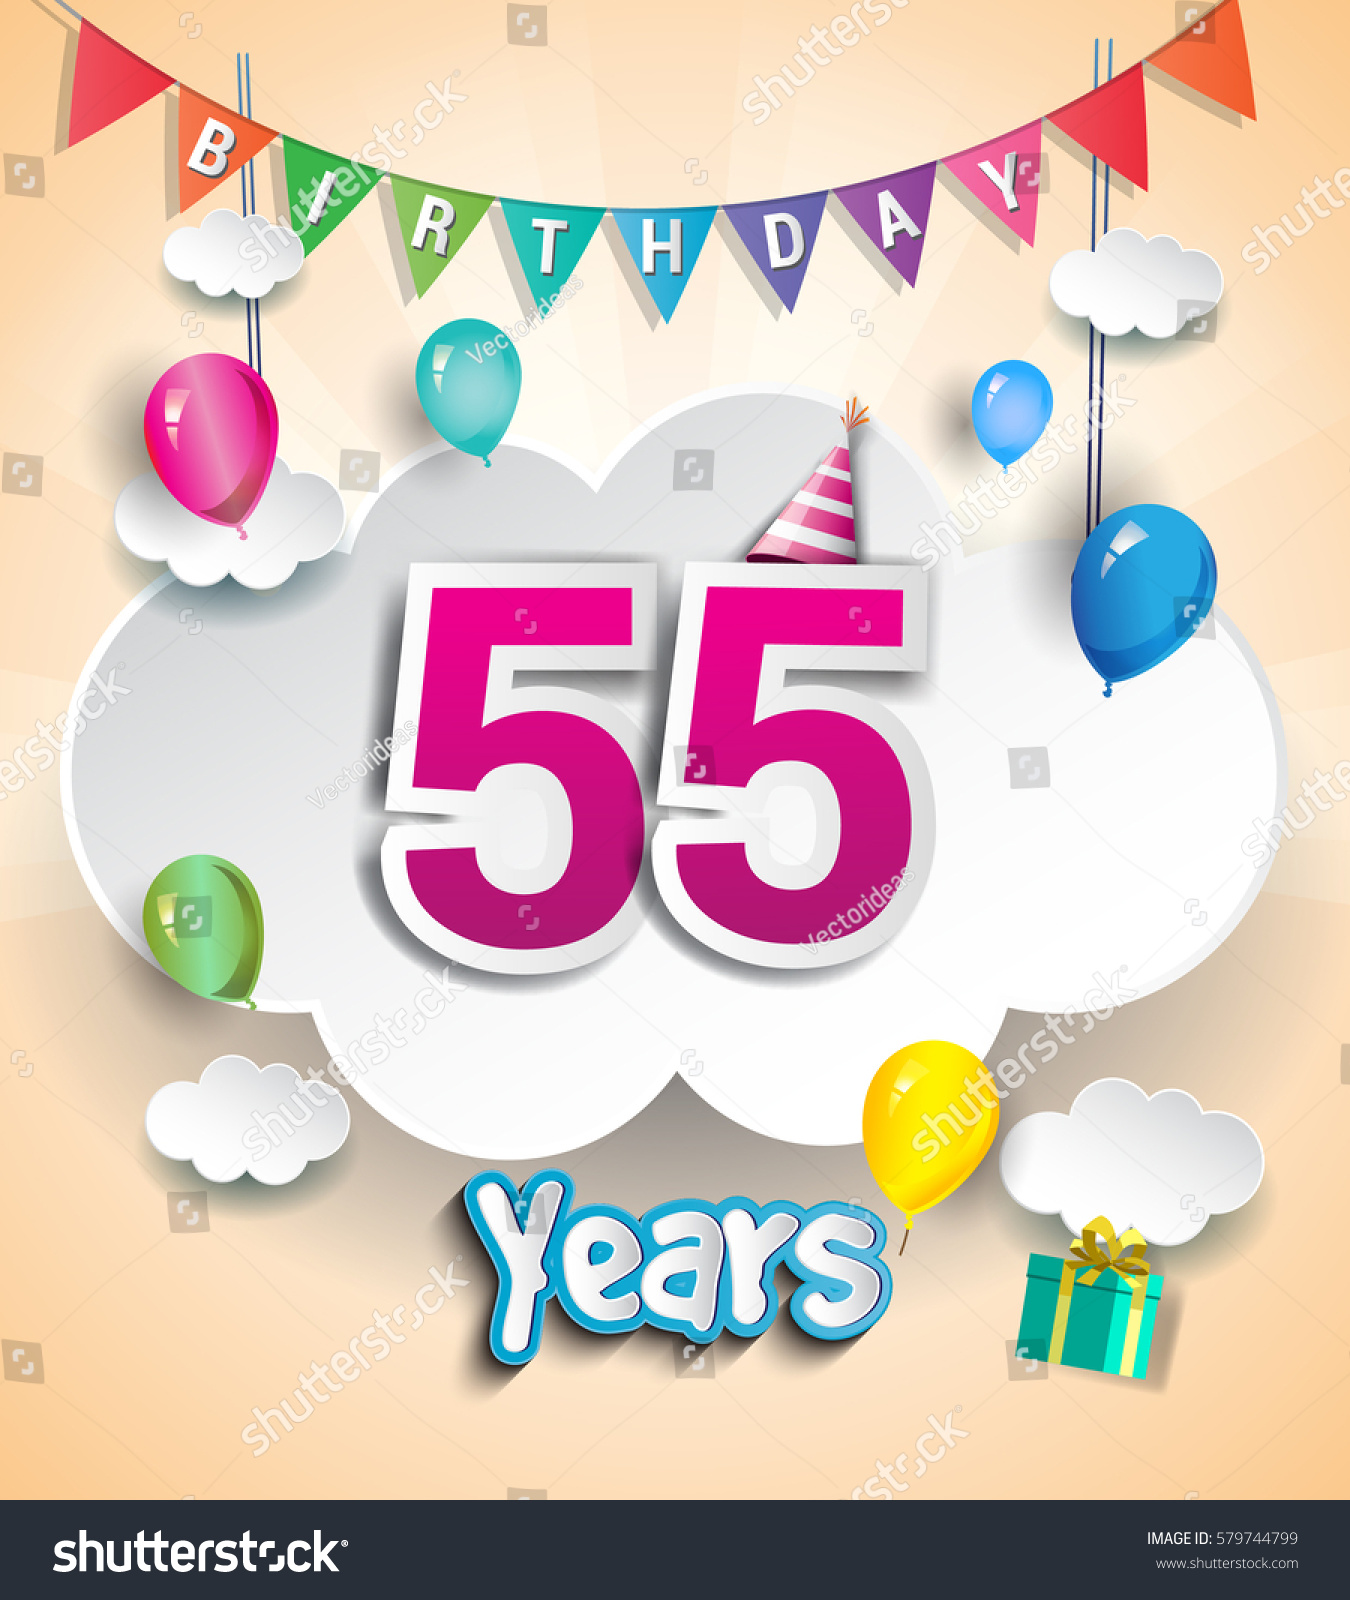 55 Years Birthday Design For Greeting Cards And Poster With Clouds Gift Box